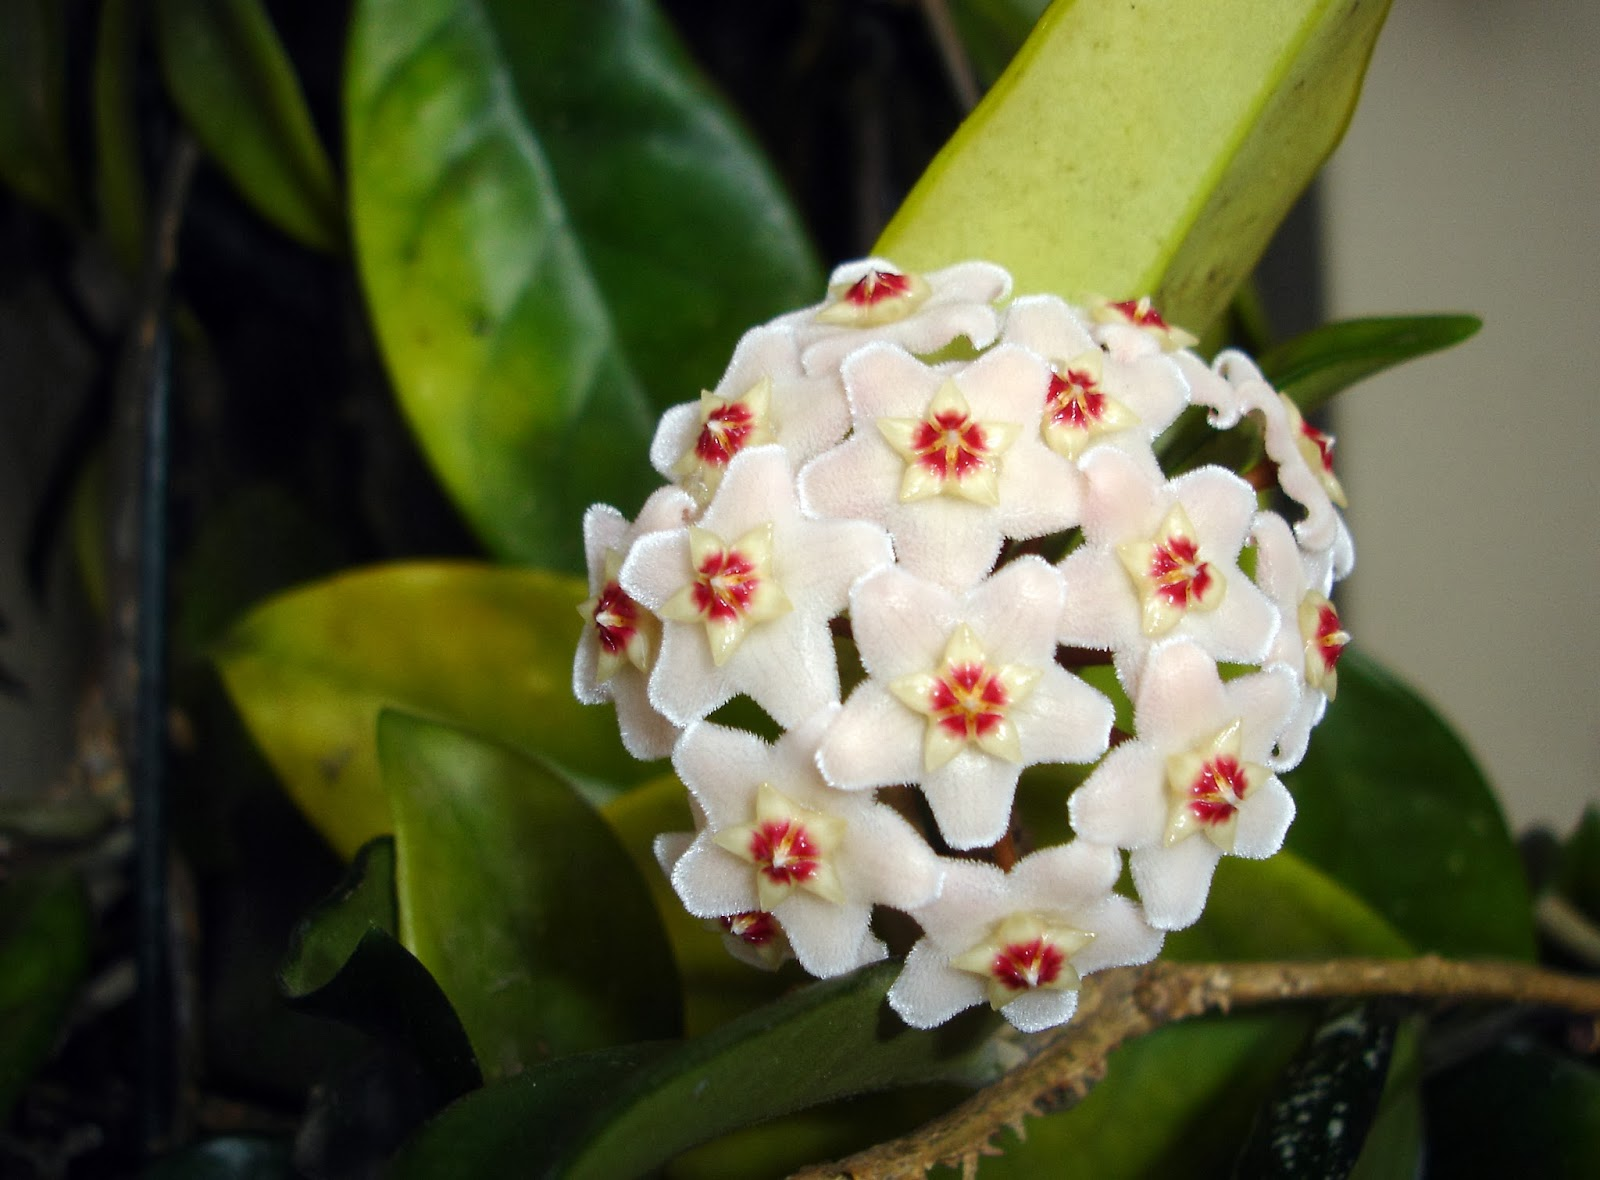 Flowers by Friends Wax Plant Hoya camosa flowers by Janet